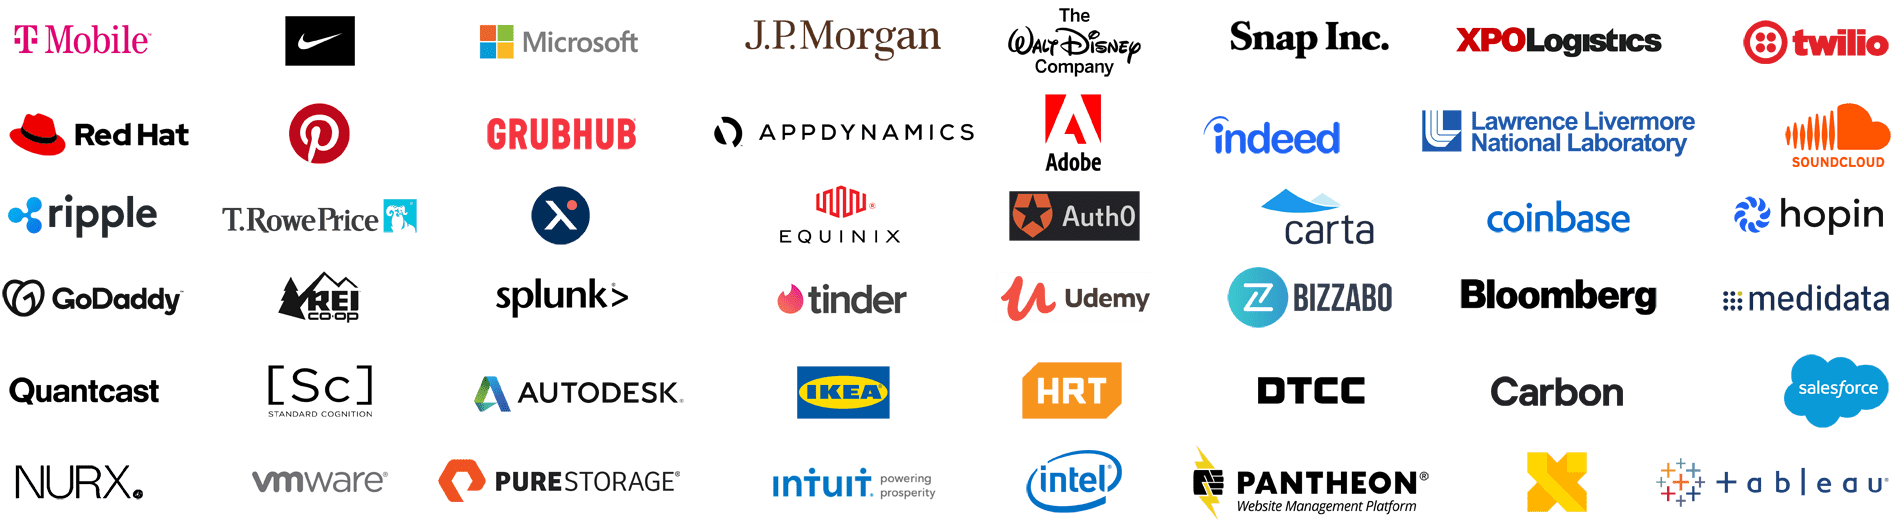 Lesbians Who Tech & Allies' Silver sponsors for the Debug 2020 Summit: T-Mobile, Nike, Microsoft, JP Morgan, The Walt Disney Company, Snap, XPO Logistics, Twilio, Red Hat, Pinterest, Grubhub, AppDynamics, Adobe, Indeed, Lawrence Livermore National Laboratory, SoundCloud, Ripple, T. Rowe Price, Expanse, Equinix, Auth0, Carta, Coinbase, Hopin, GoDaddy, REI, Splunk, Tinder, Udemy, Bizzabo, Bloomberg, Medidata Solutions, Quantcast, Standard Cognition, Autodesk, IKEA, Hudson River Trading, DTCC, Carbon, Salesforce, NURX, VMware, Pure Storage, Intuit, Intel, Pantheon, X, the moonshot factory, Tableau